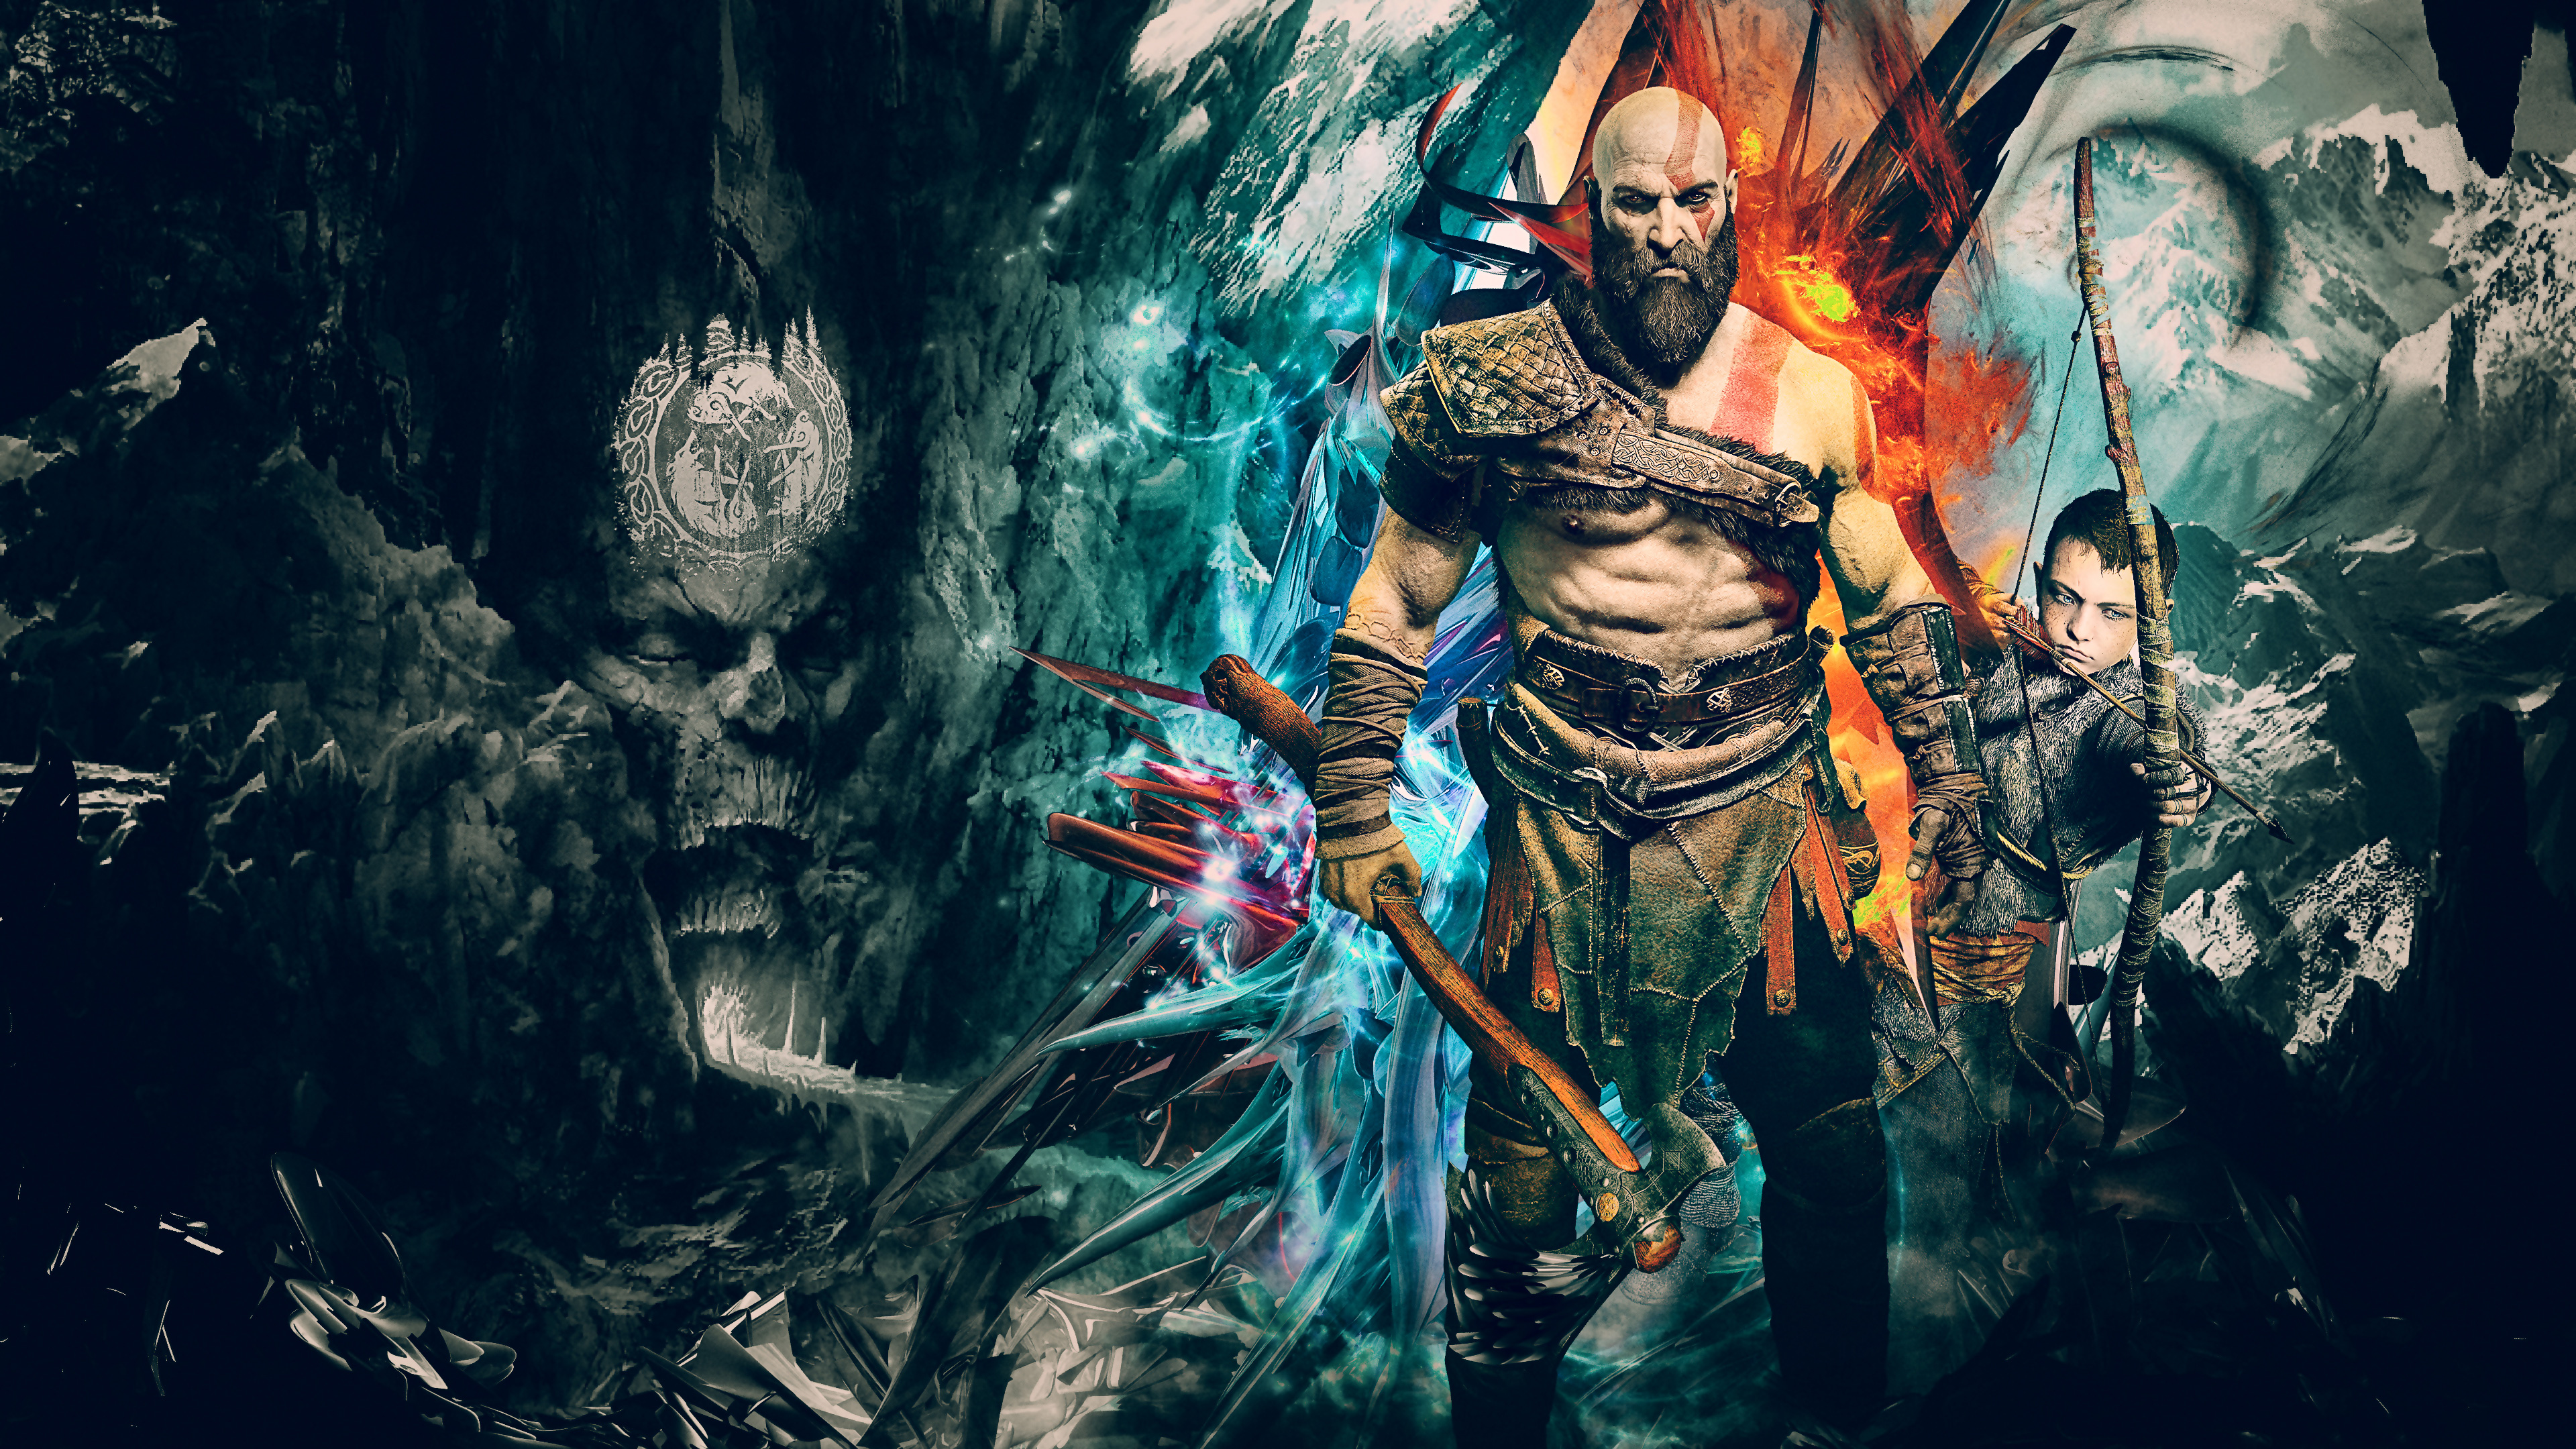 Wallpaper 4k Kratos God Of War 4k Artwork 4k Wallpapers